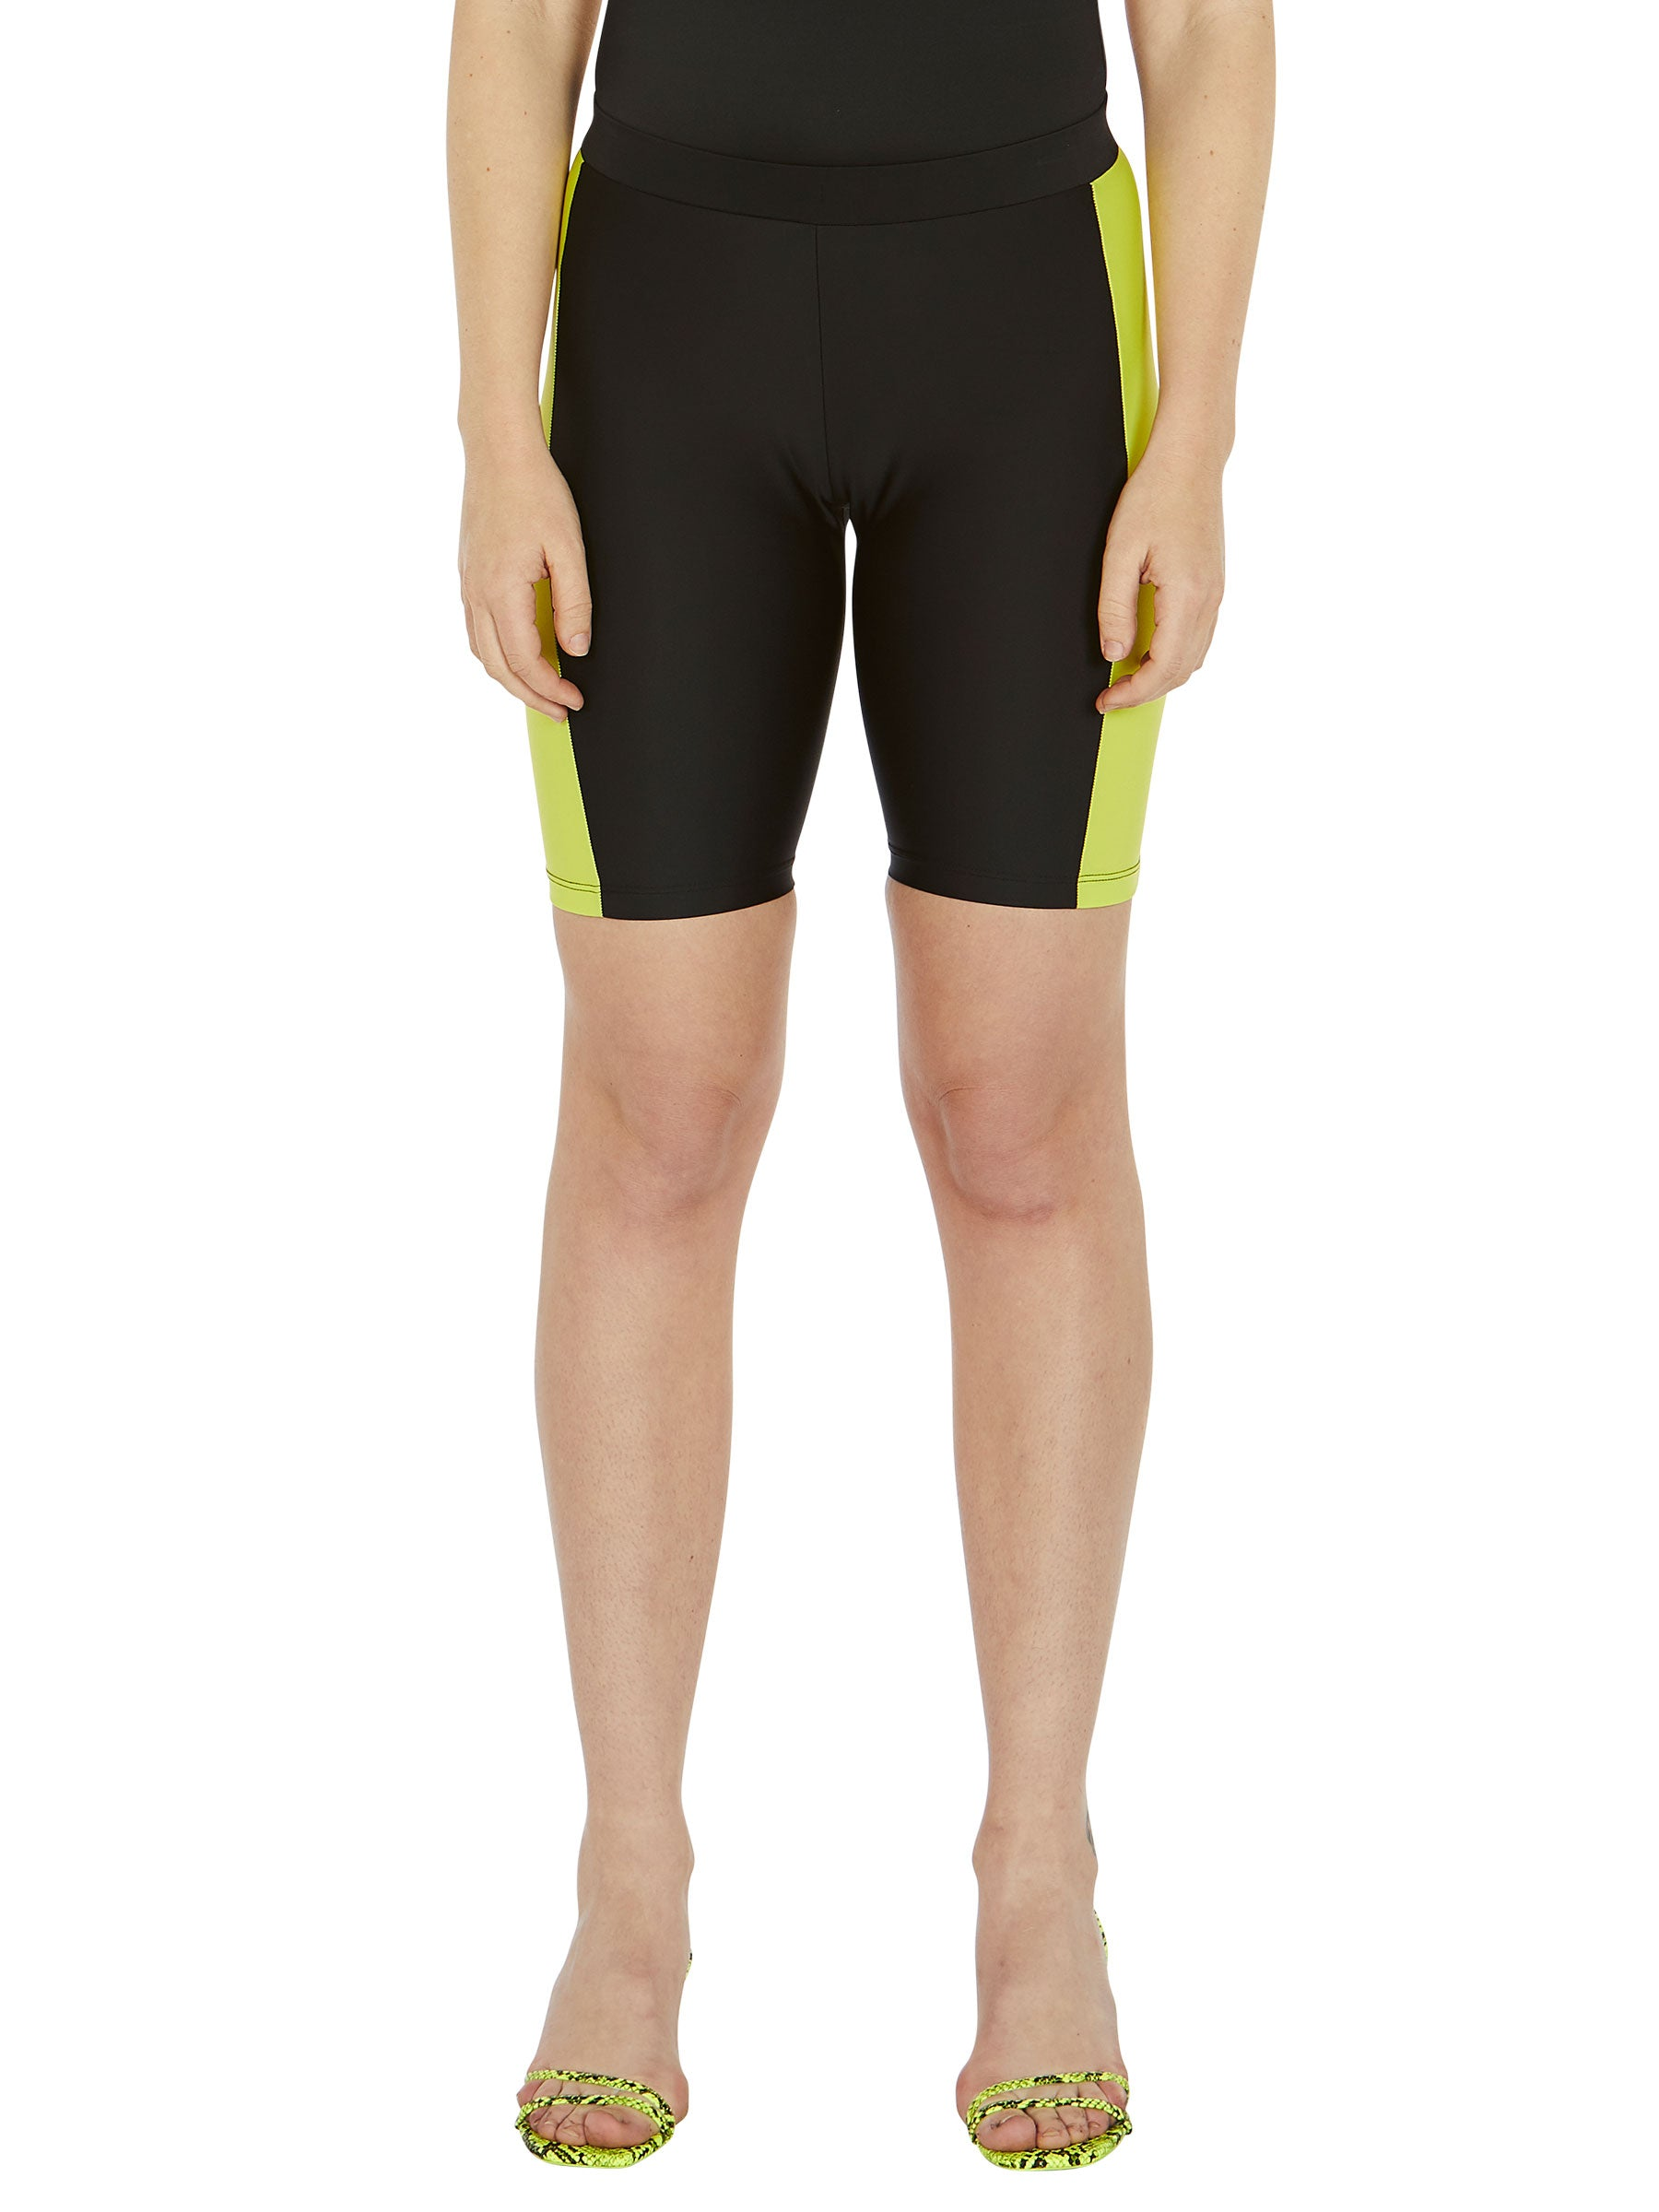 odd92 Fantabody Cycling Shorts Spring/Summer 2019 Womenswear - 3